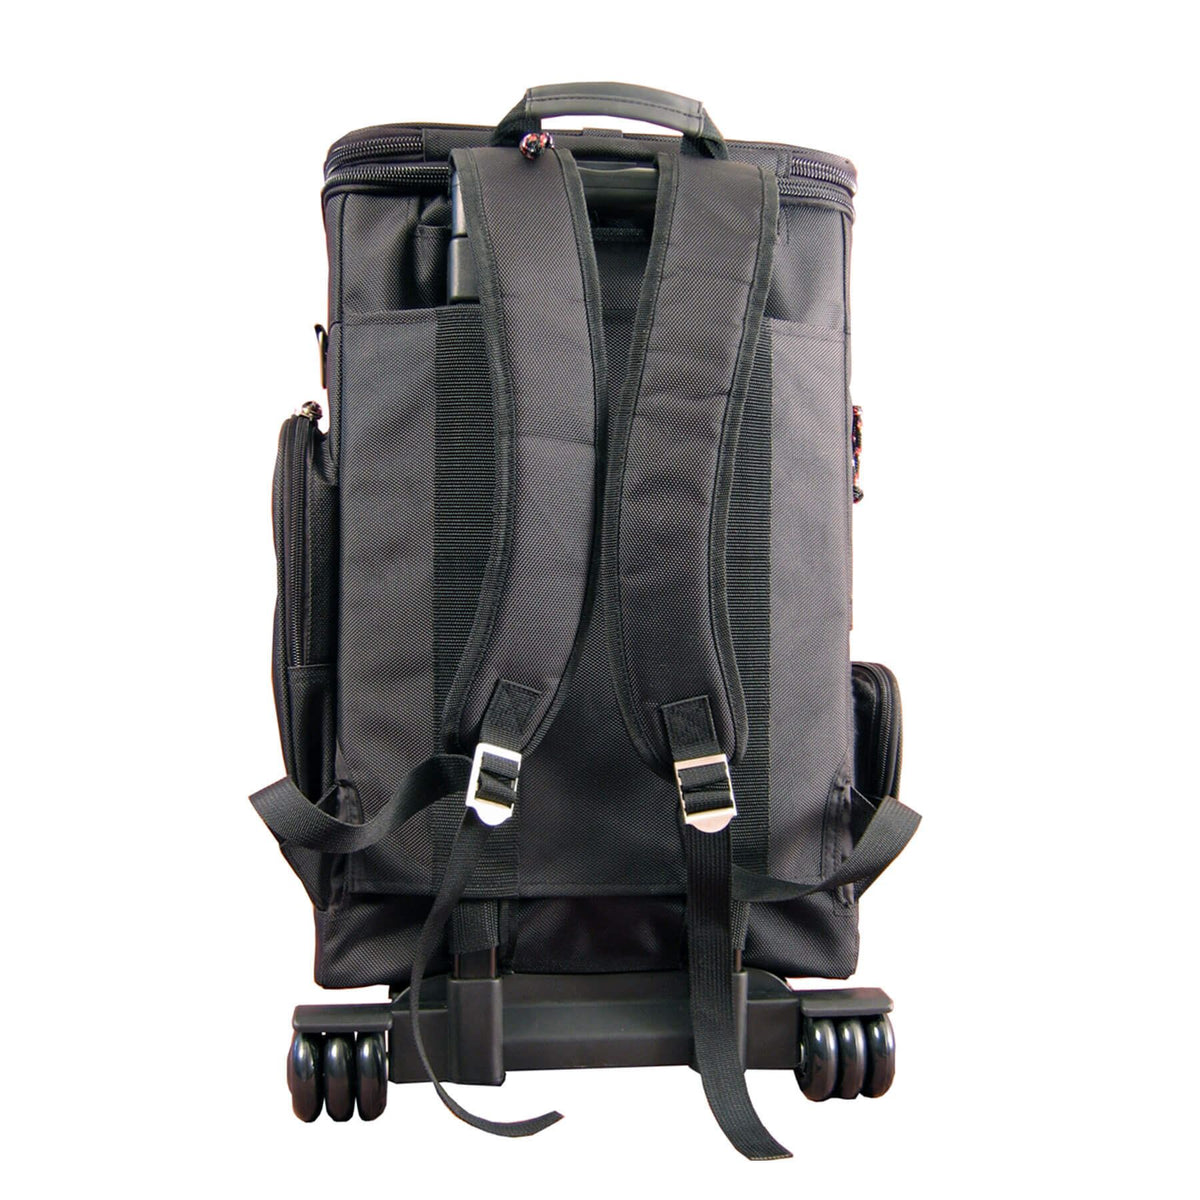 Gator Cases Gear & Laptop Backpack fits Korg microKONTROL, microSAMPLER